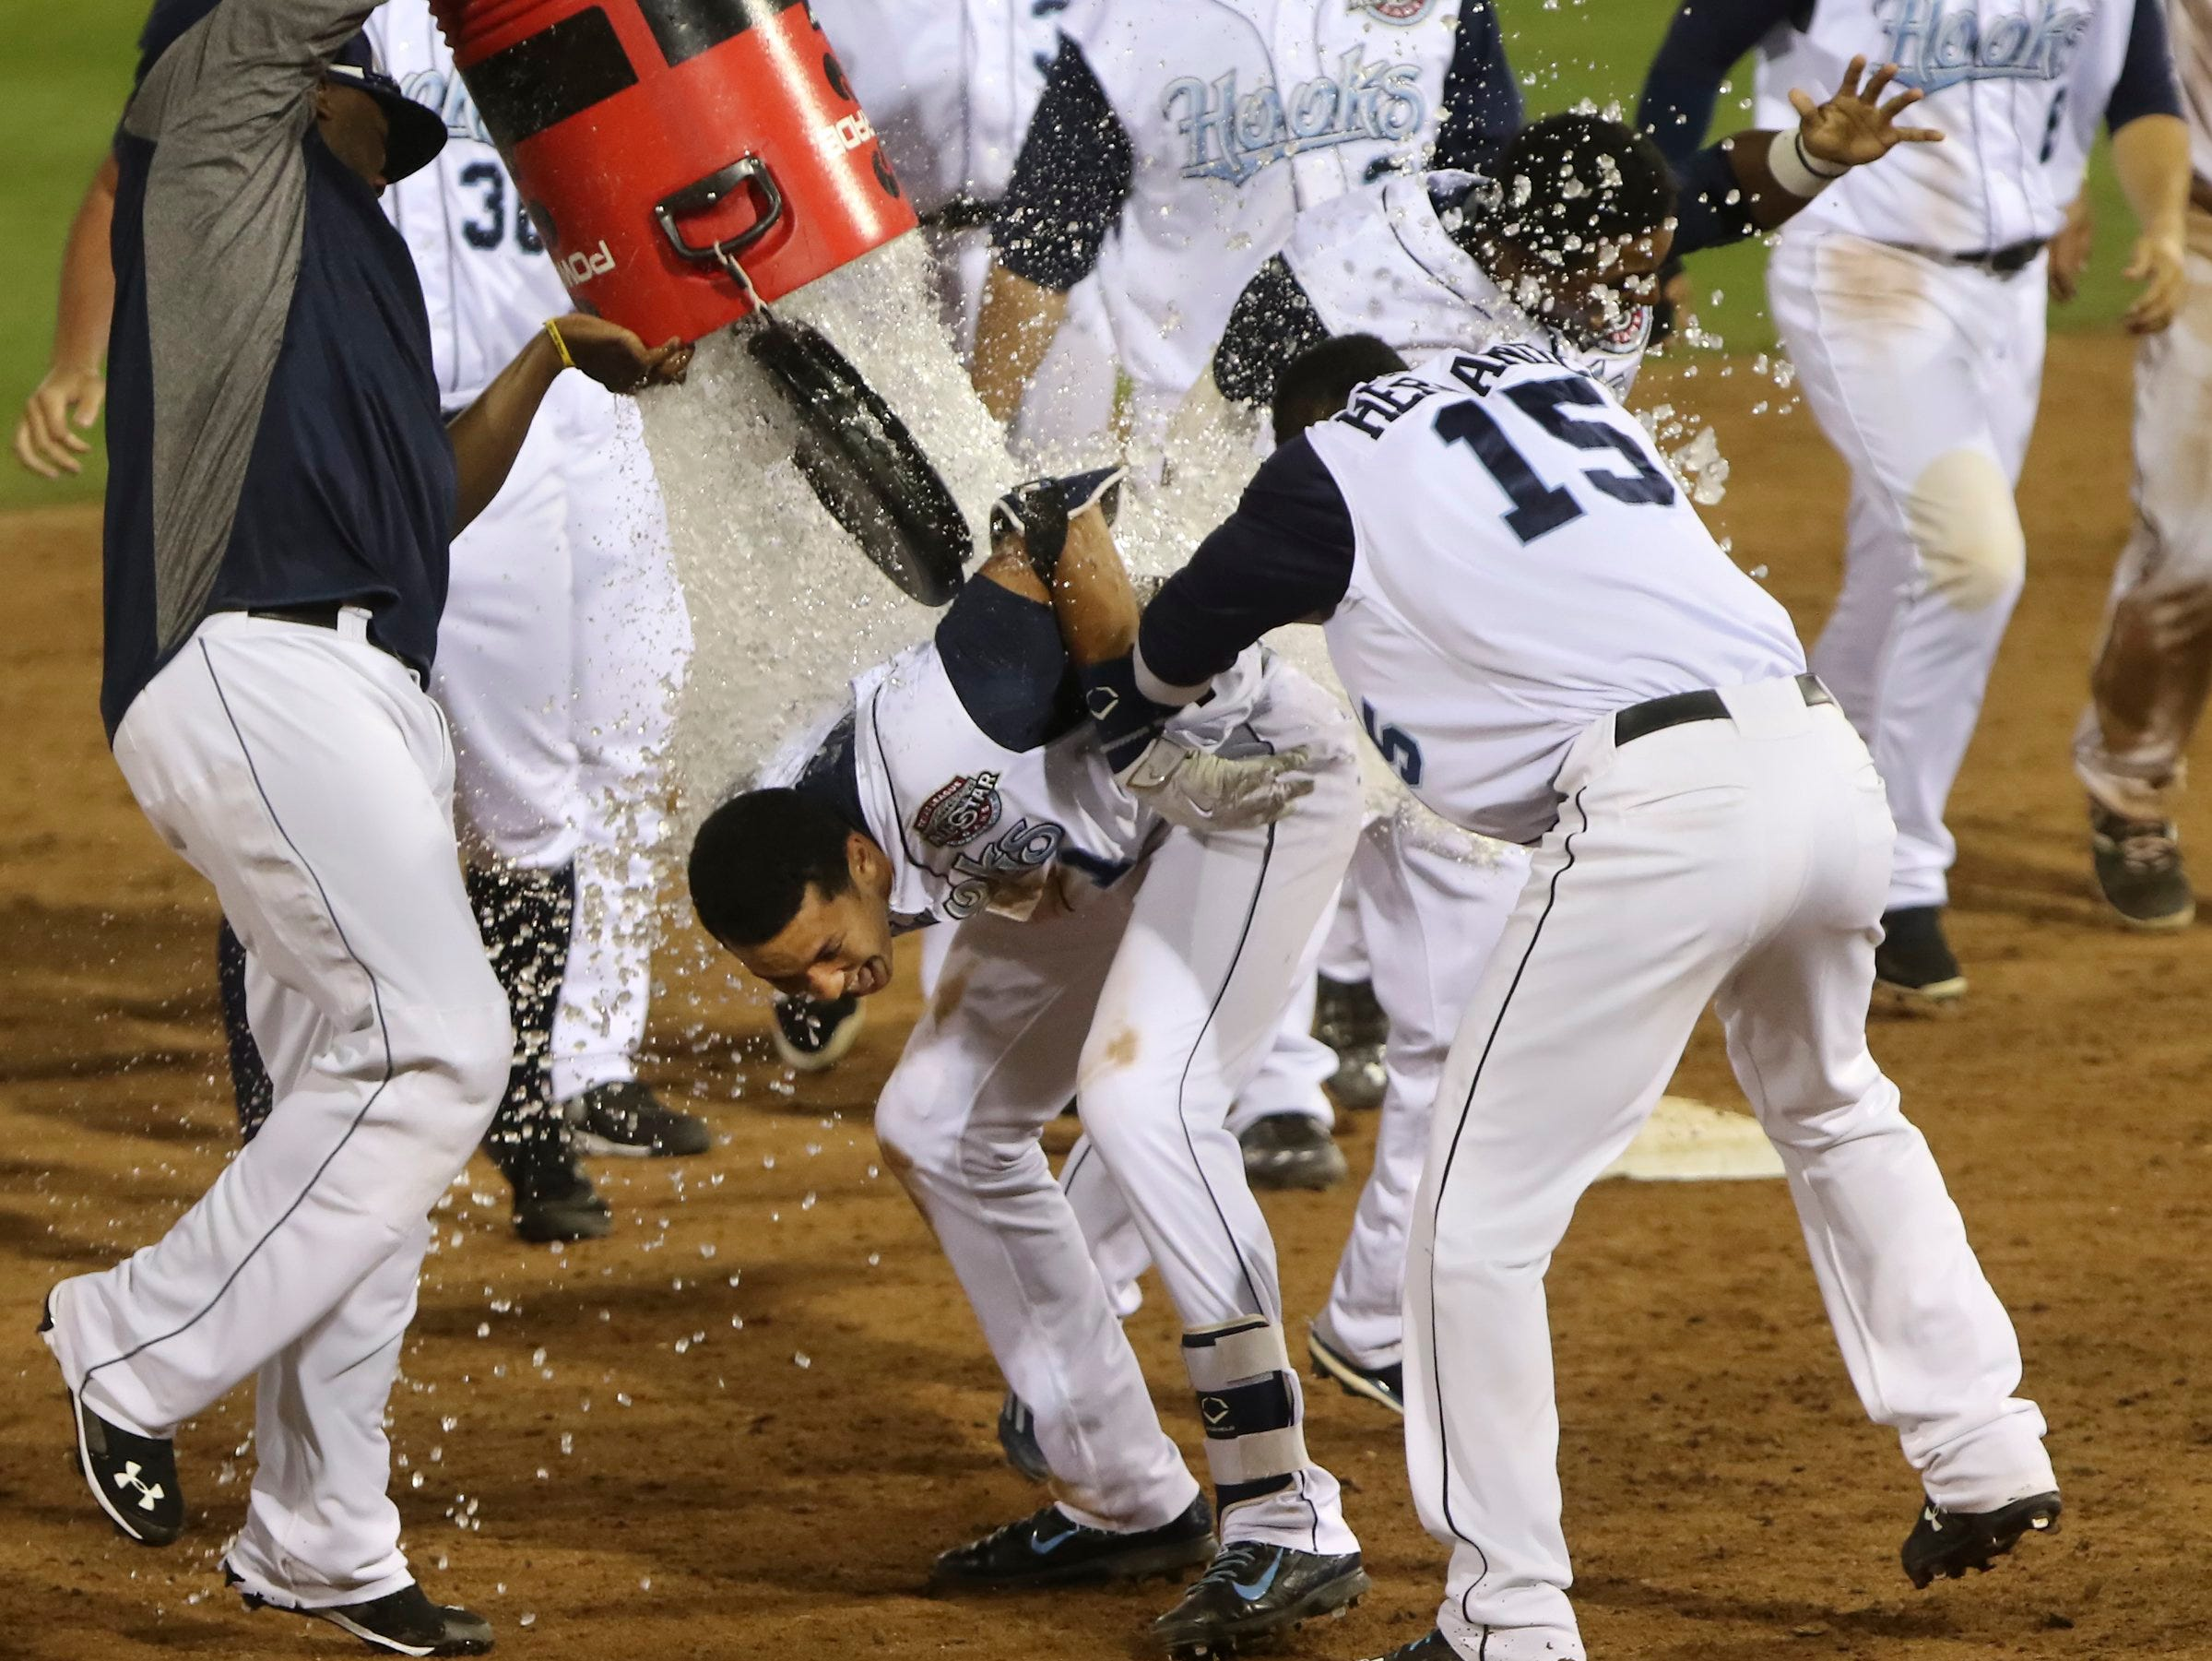 GEORGE TULEY/SPECIAL TO THE CALLER-TIMES Teoscar Hernandez (15) holds Carlos Correa for a traditional Gatorade bath following his ninth inning Three-RBI, Two-out, bases-loaded walk-off gapper to left center field for a 5-4 win over Frisco at Whataburger Field in Corpus Christi, Monday, May 4, 2015.